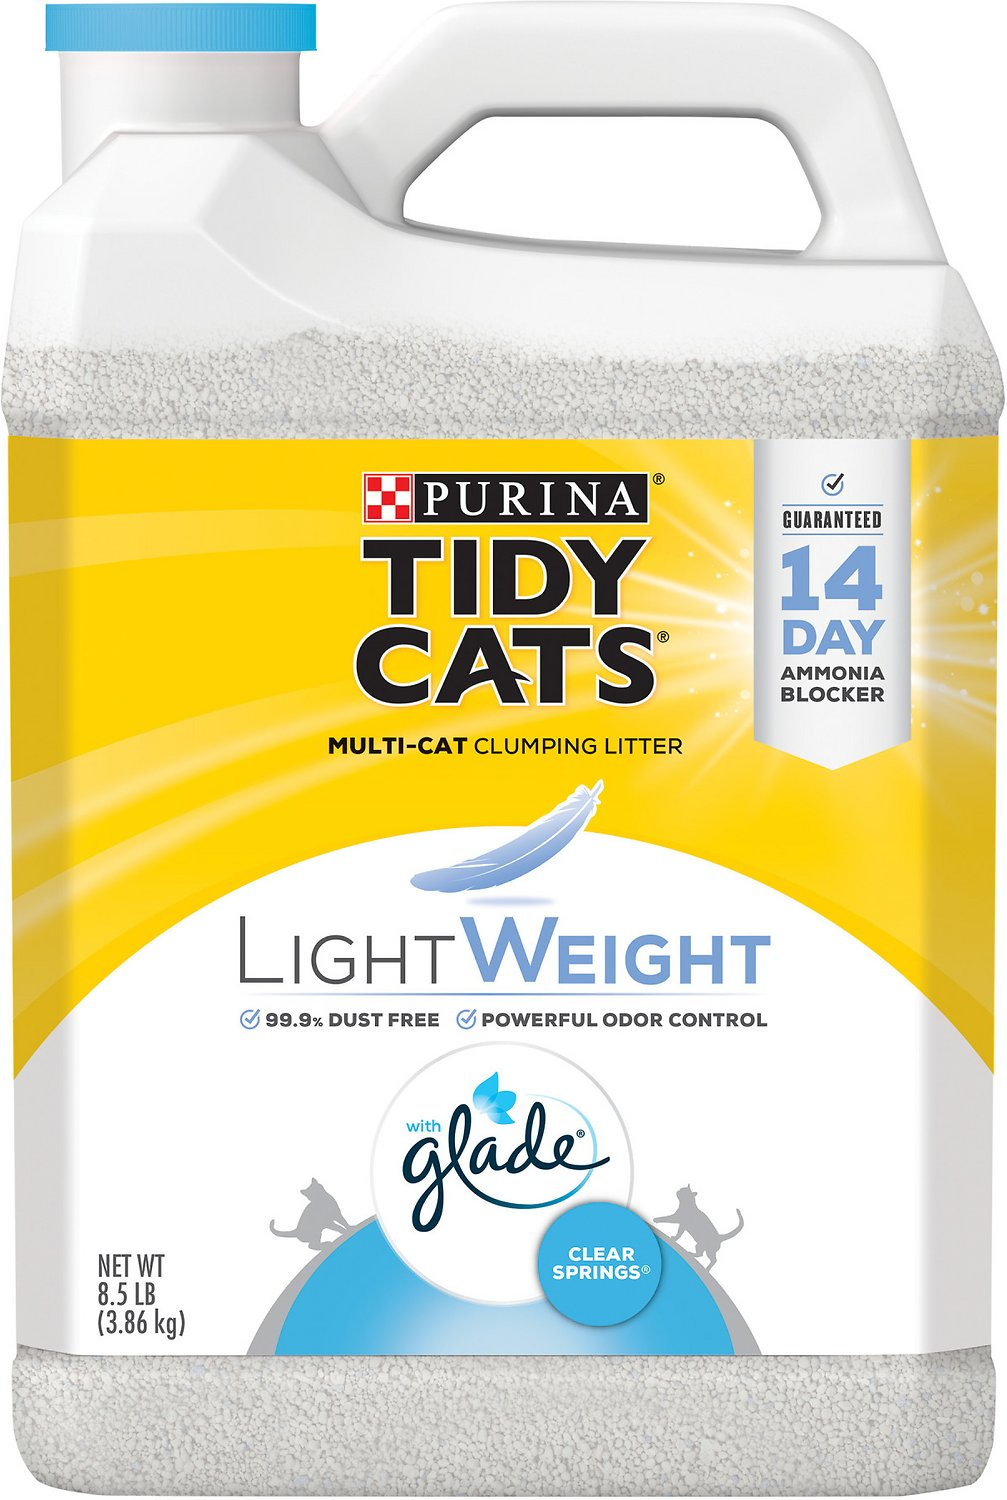 2 x 20 lb Tidy Cats Clear Springs Scoop Multiple Cat Clumping Litter 40 lb